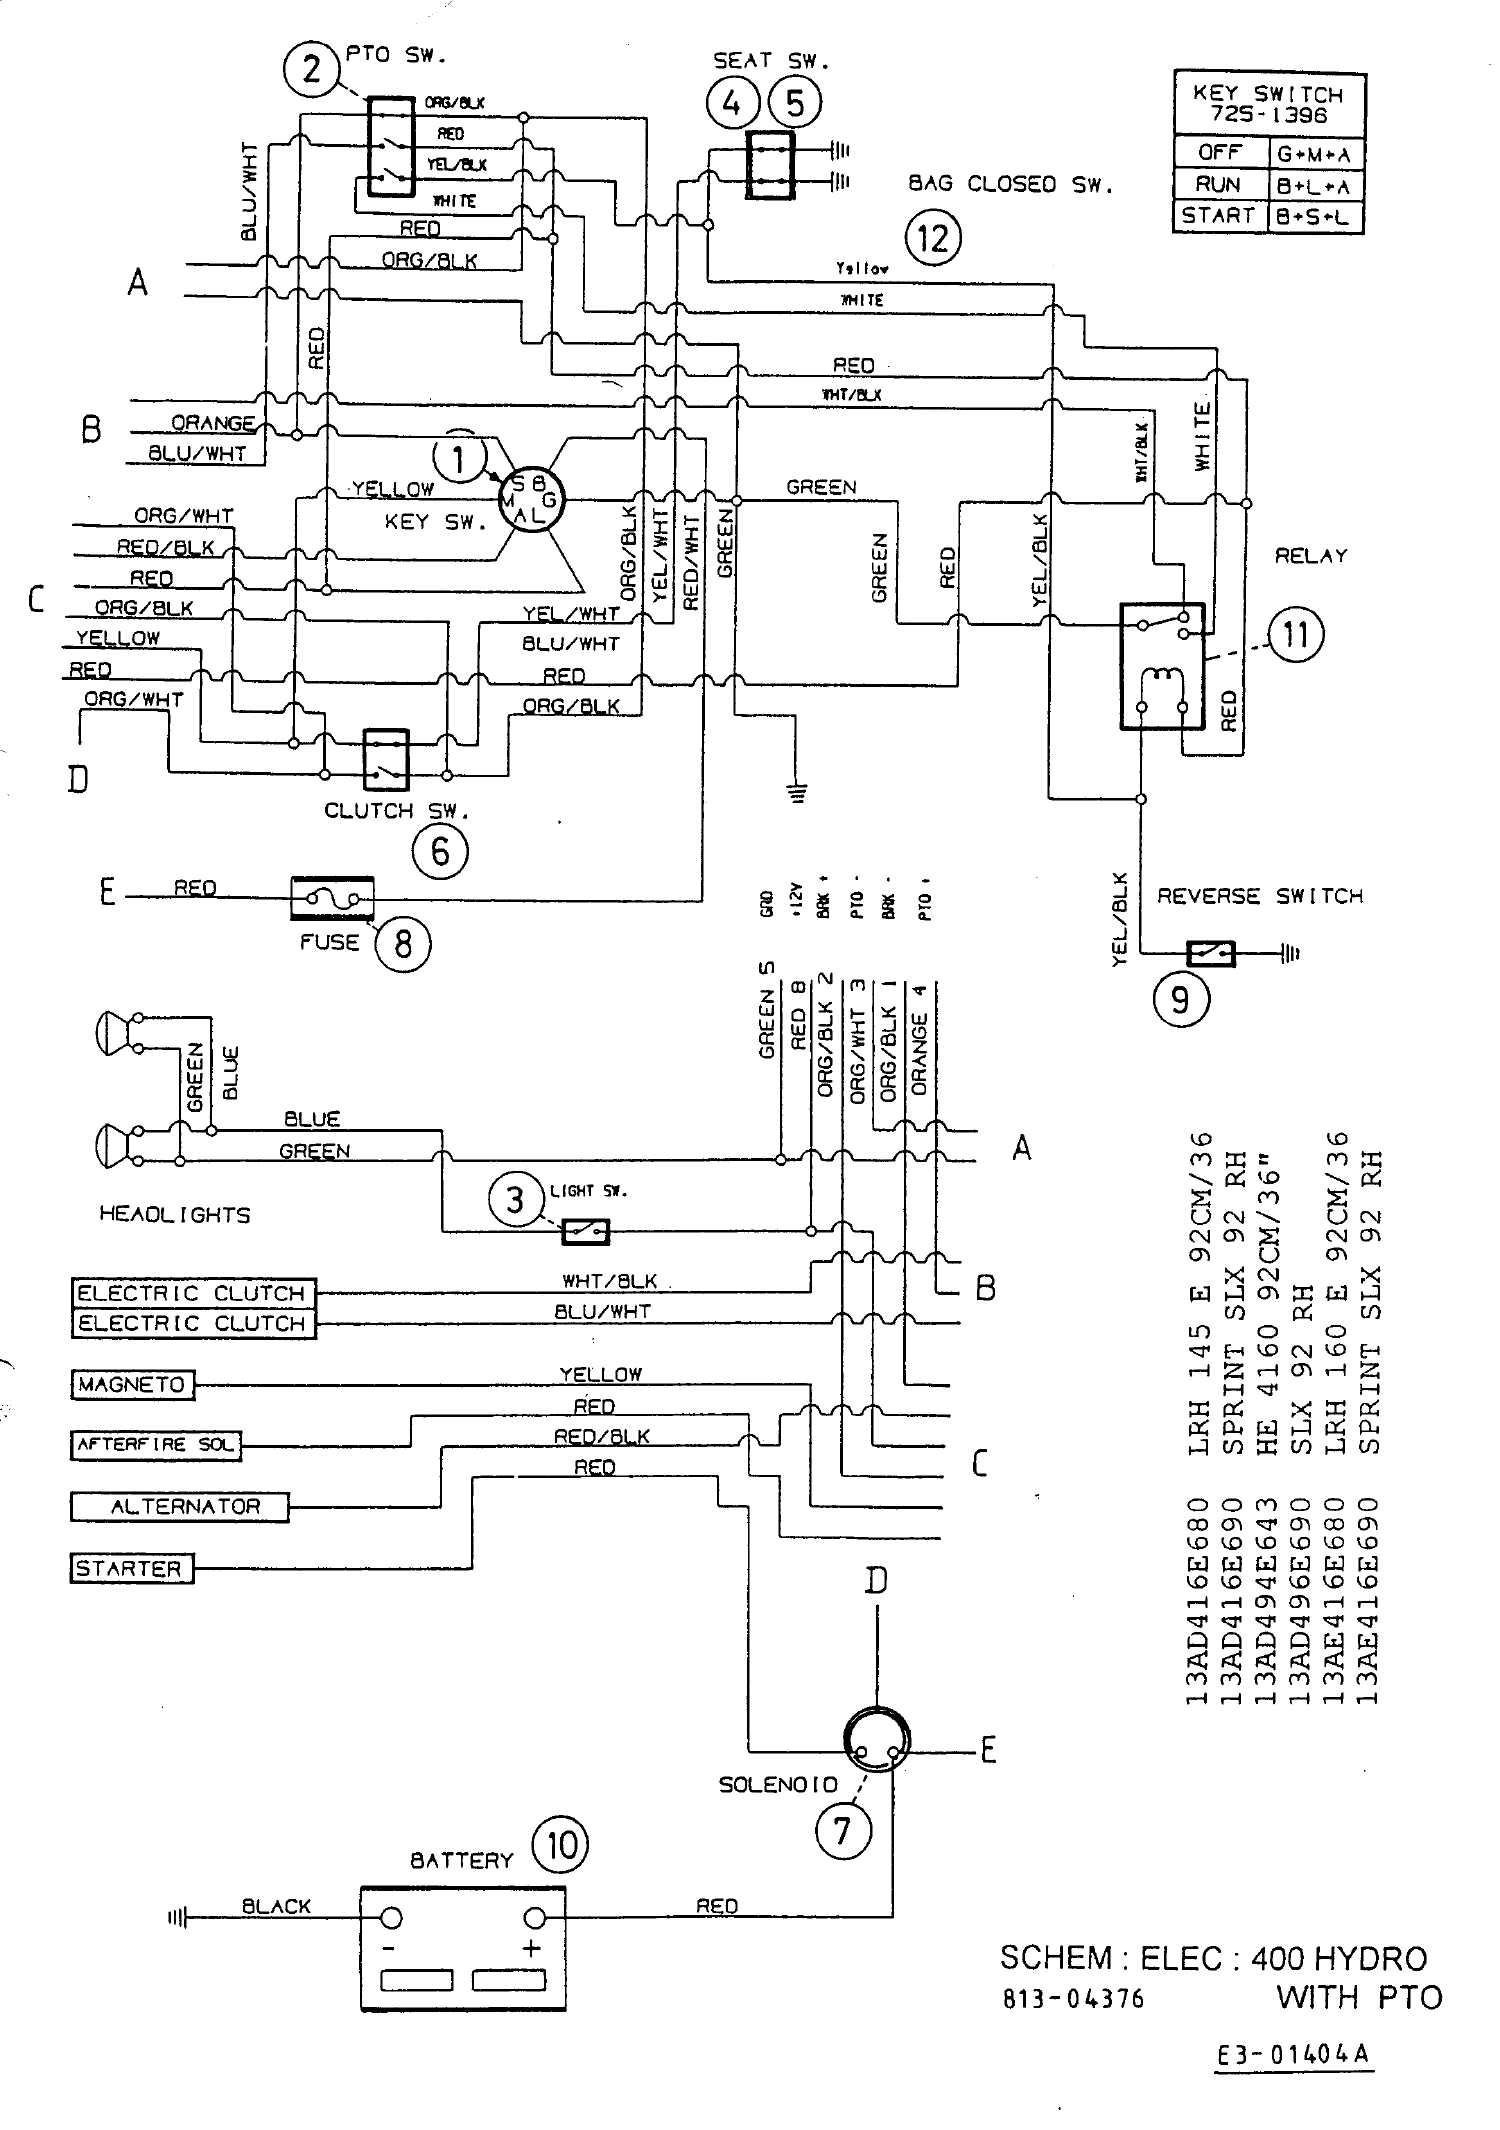 mtd yardman wiring diagram mtd image wiring diagram mtd wiring diagrams auto wiring diagram schematic on mtd yardman wiring diagram